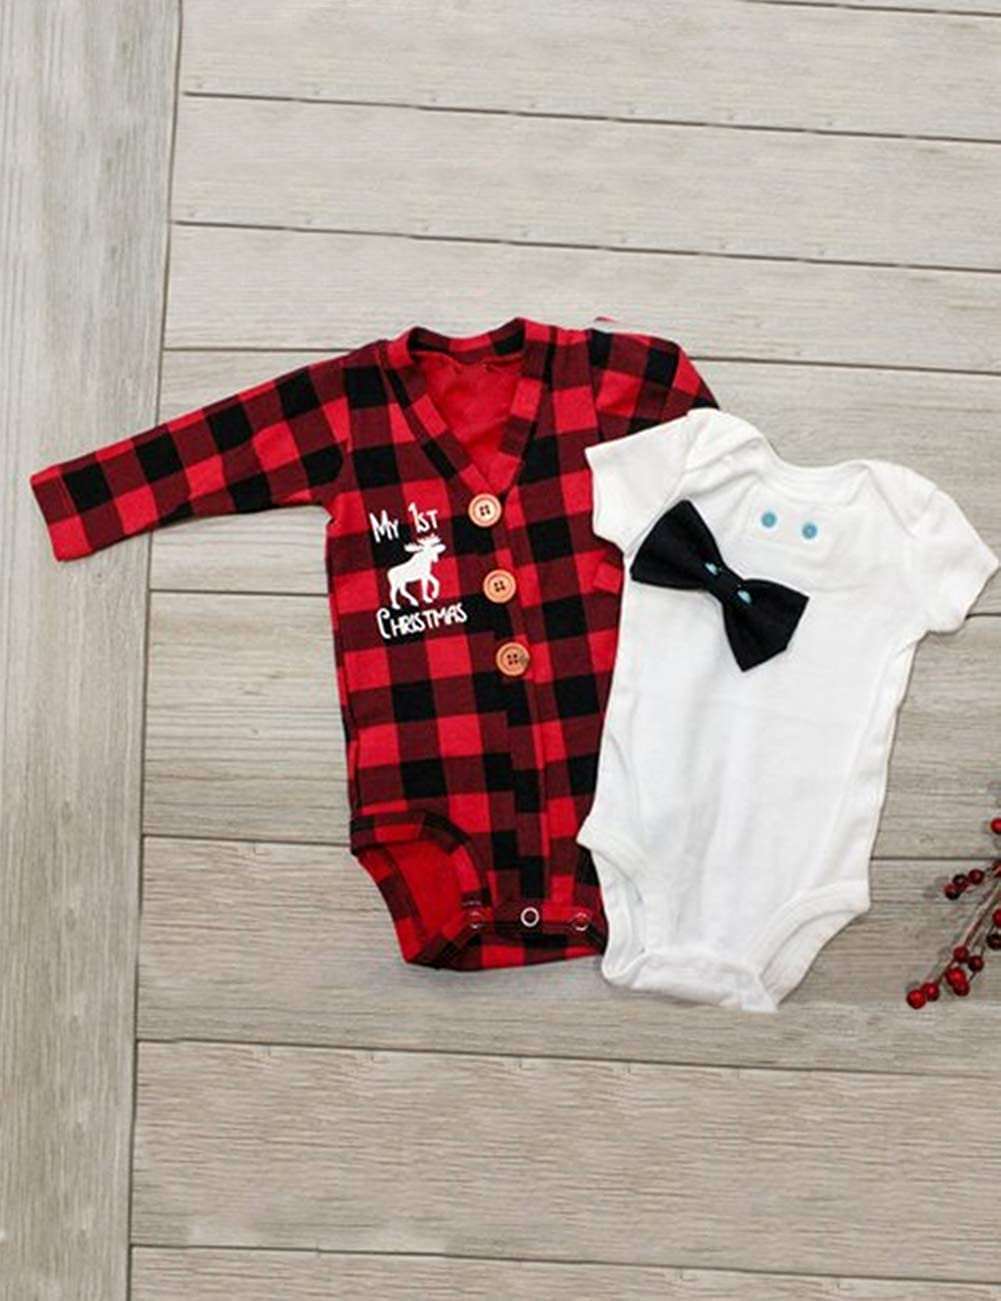 90f5e0f85b0b ... Newborn Baby Boys Girls Christmas Plaid Cardigan Romper Christmas Outfit  with Moose Embroidery 2Pcs Outfit Set